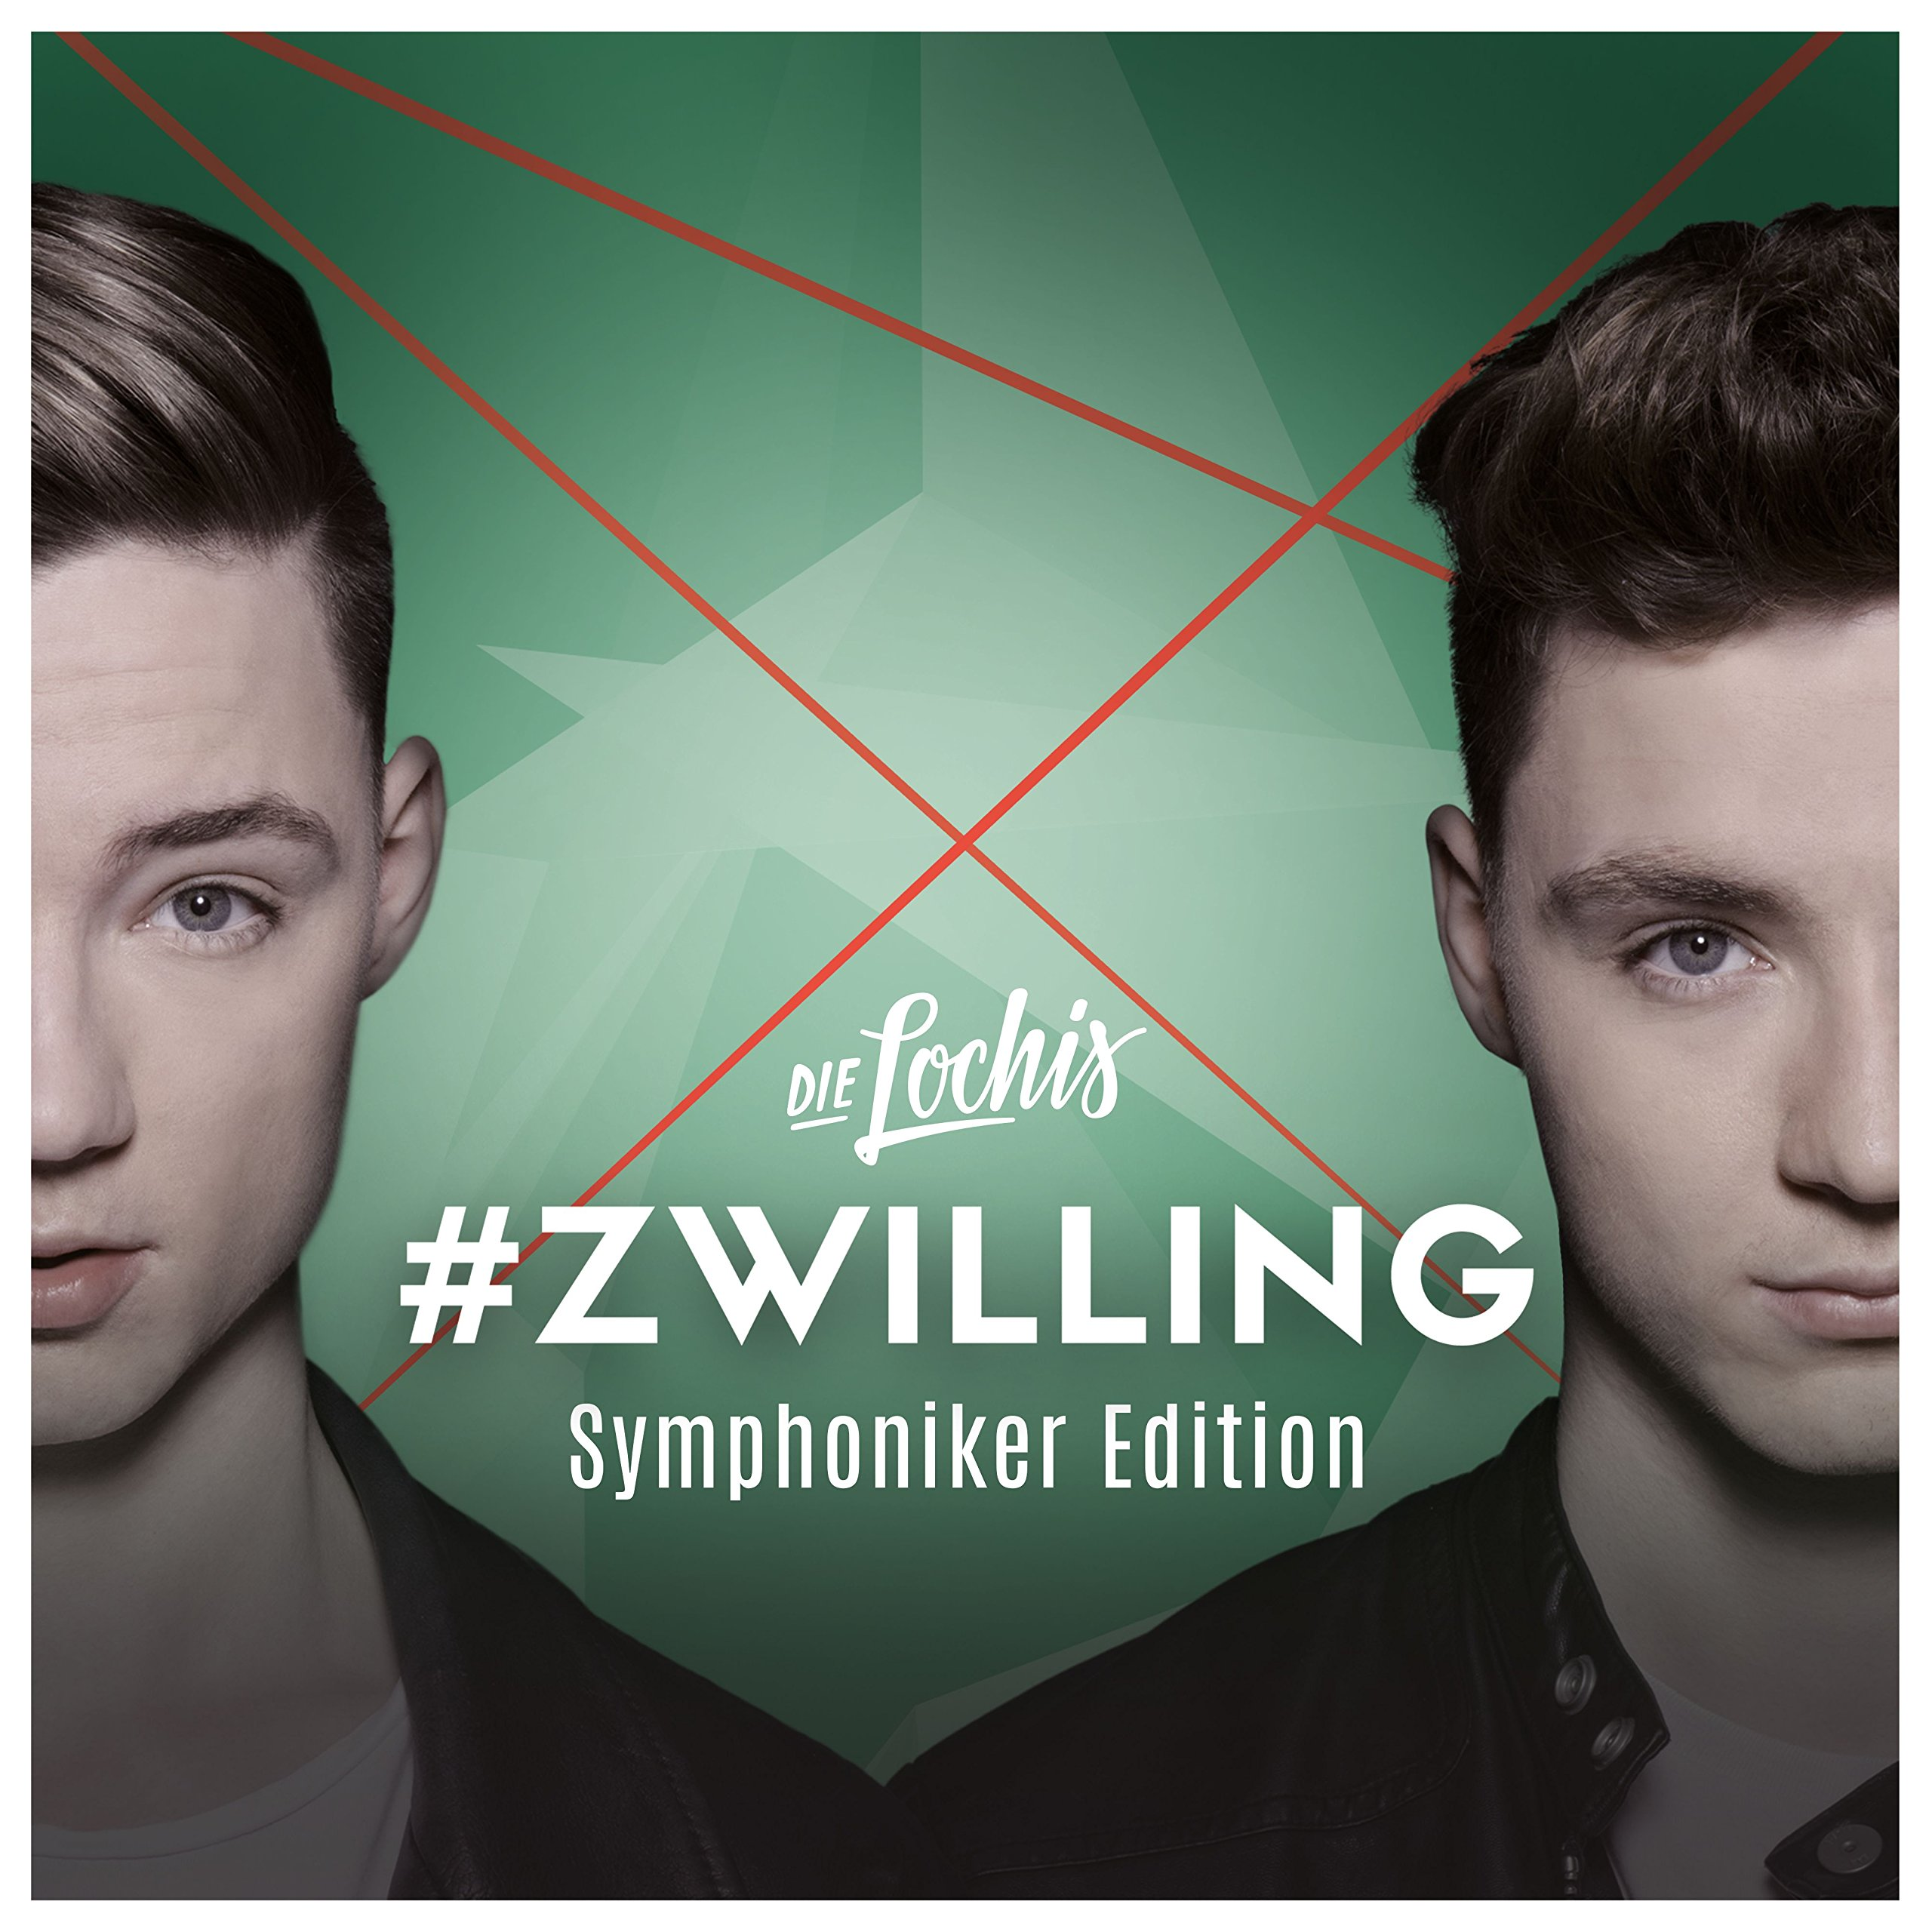 '#Zwilling (Symphoniker Edition)